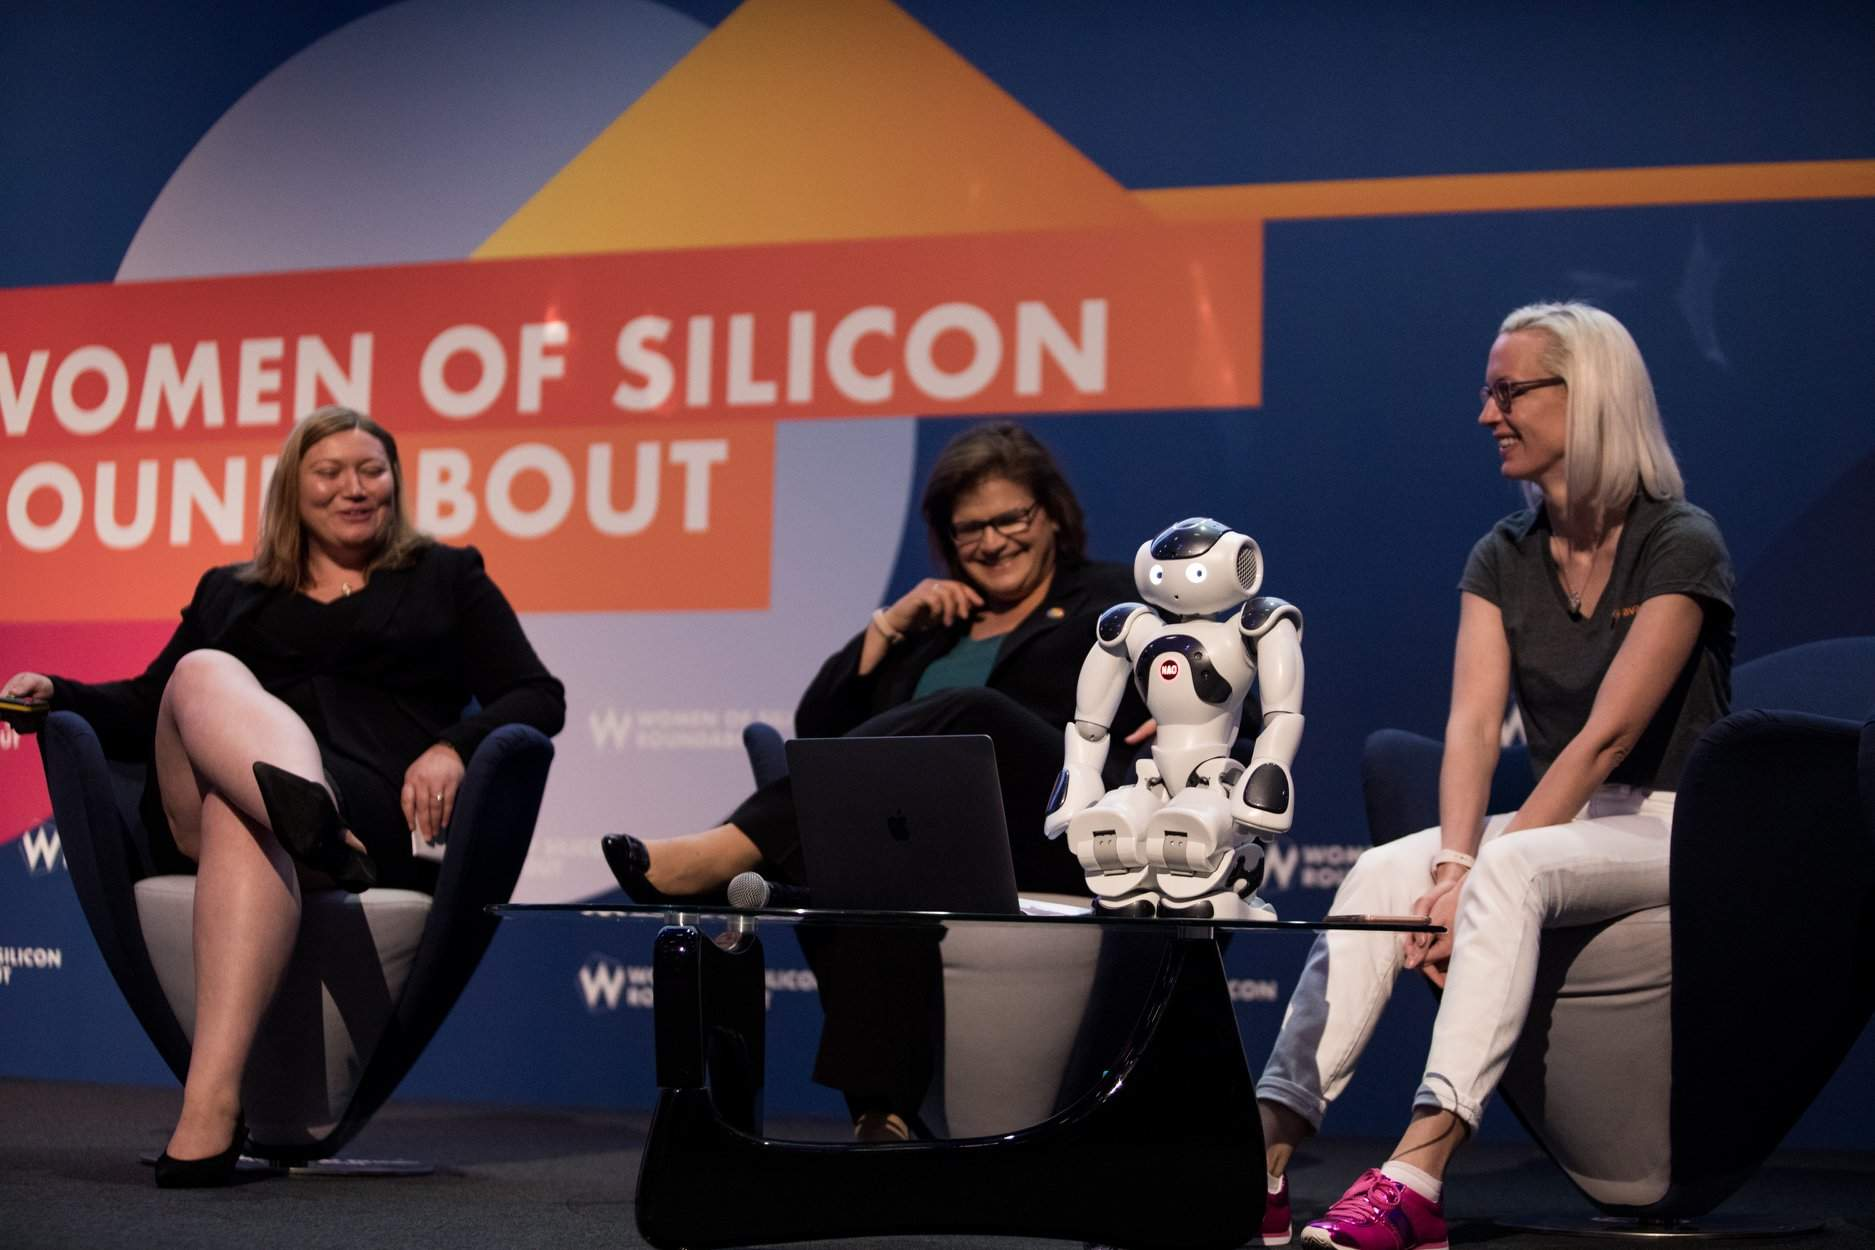 Women of Silicon Roundabout2